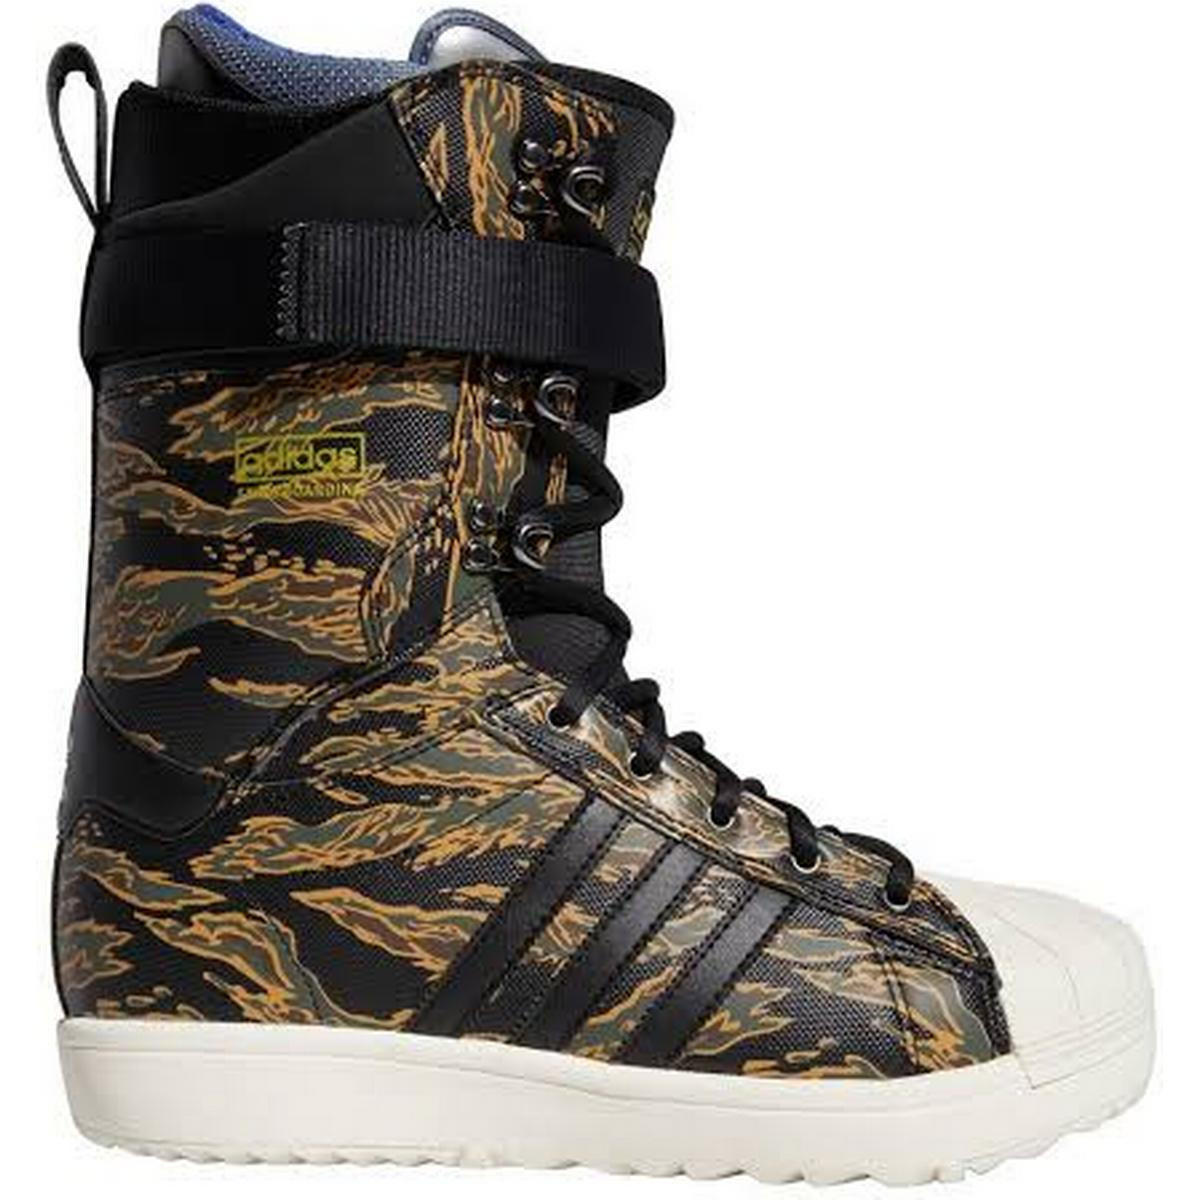 Buy Superstar Adv Snowboard Boots from Adidas Snowboarding